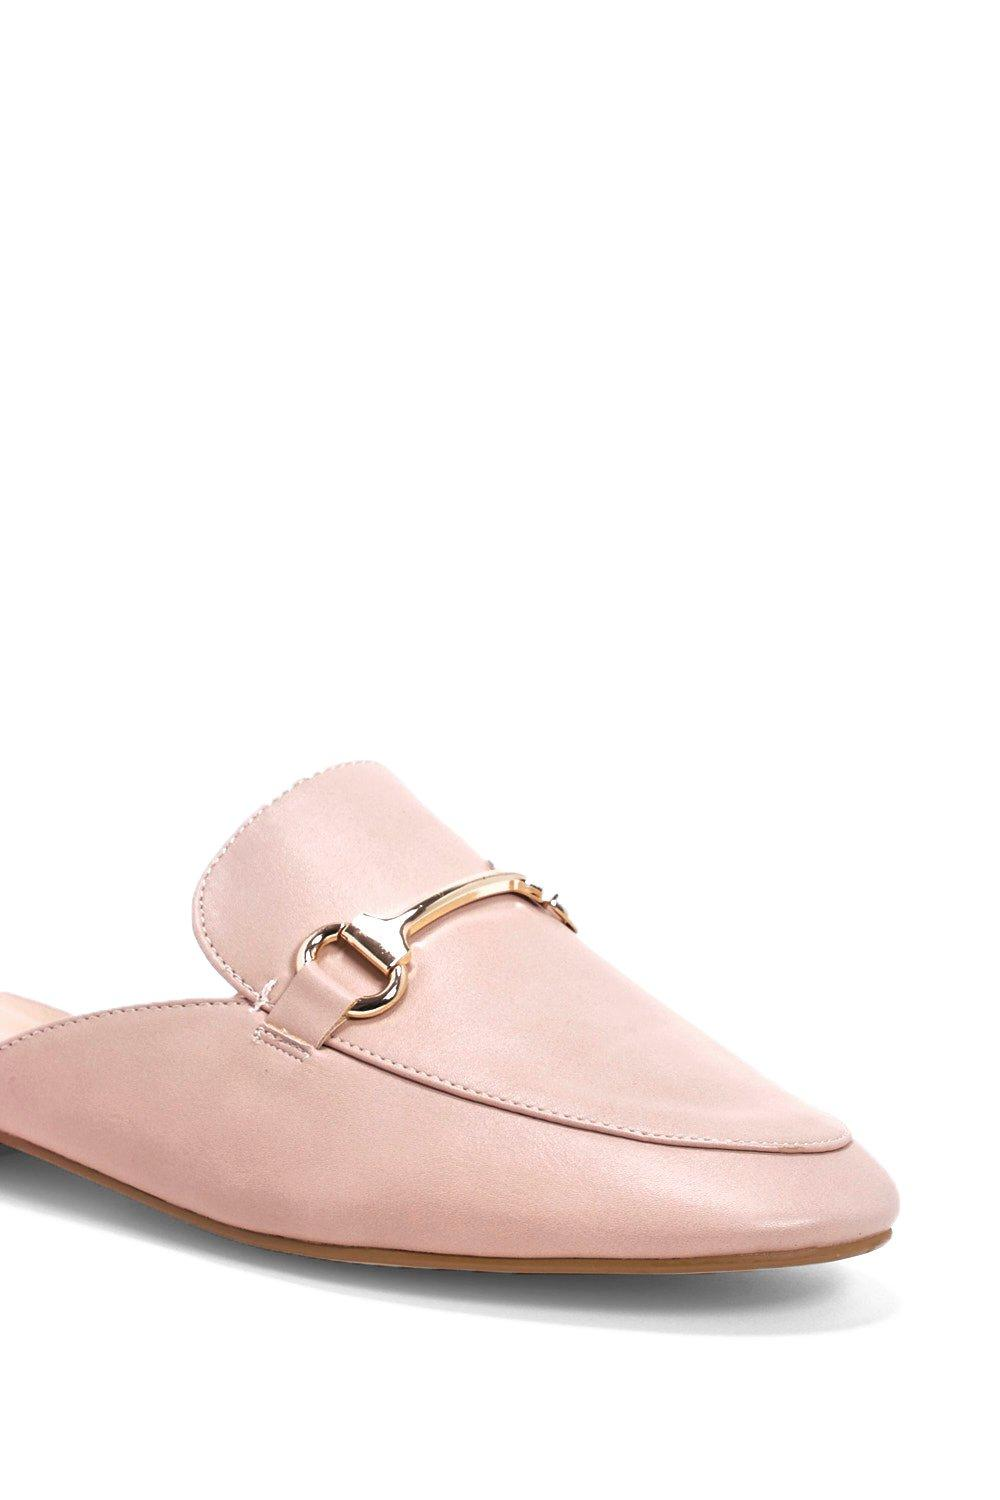 b0e1725f60082 Metallic Trim Mule Loafer | Shop Clothes at Nasty Gal!